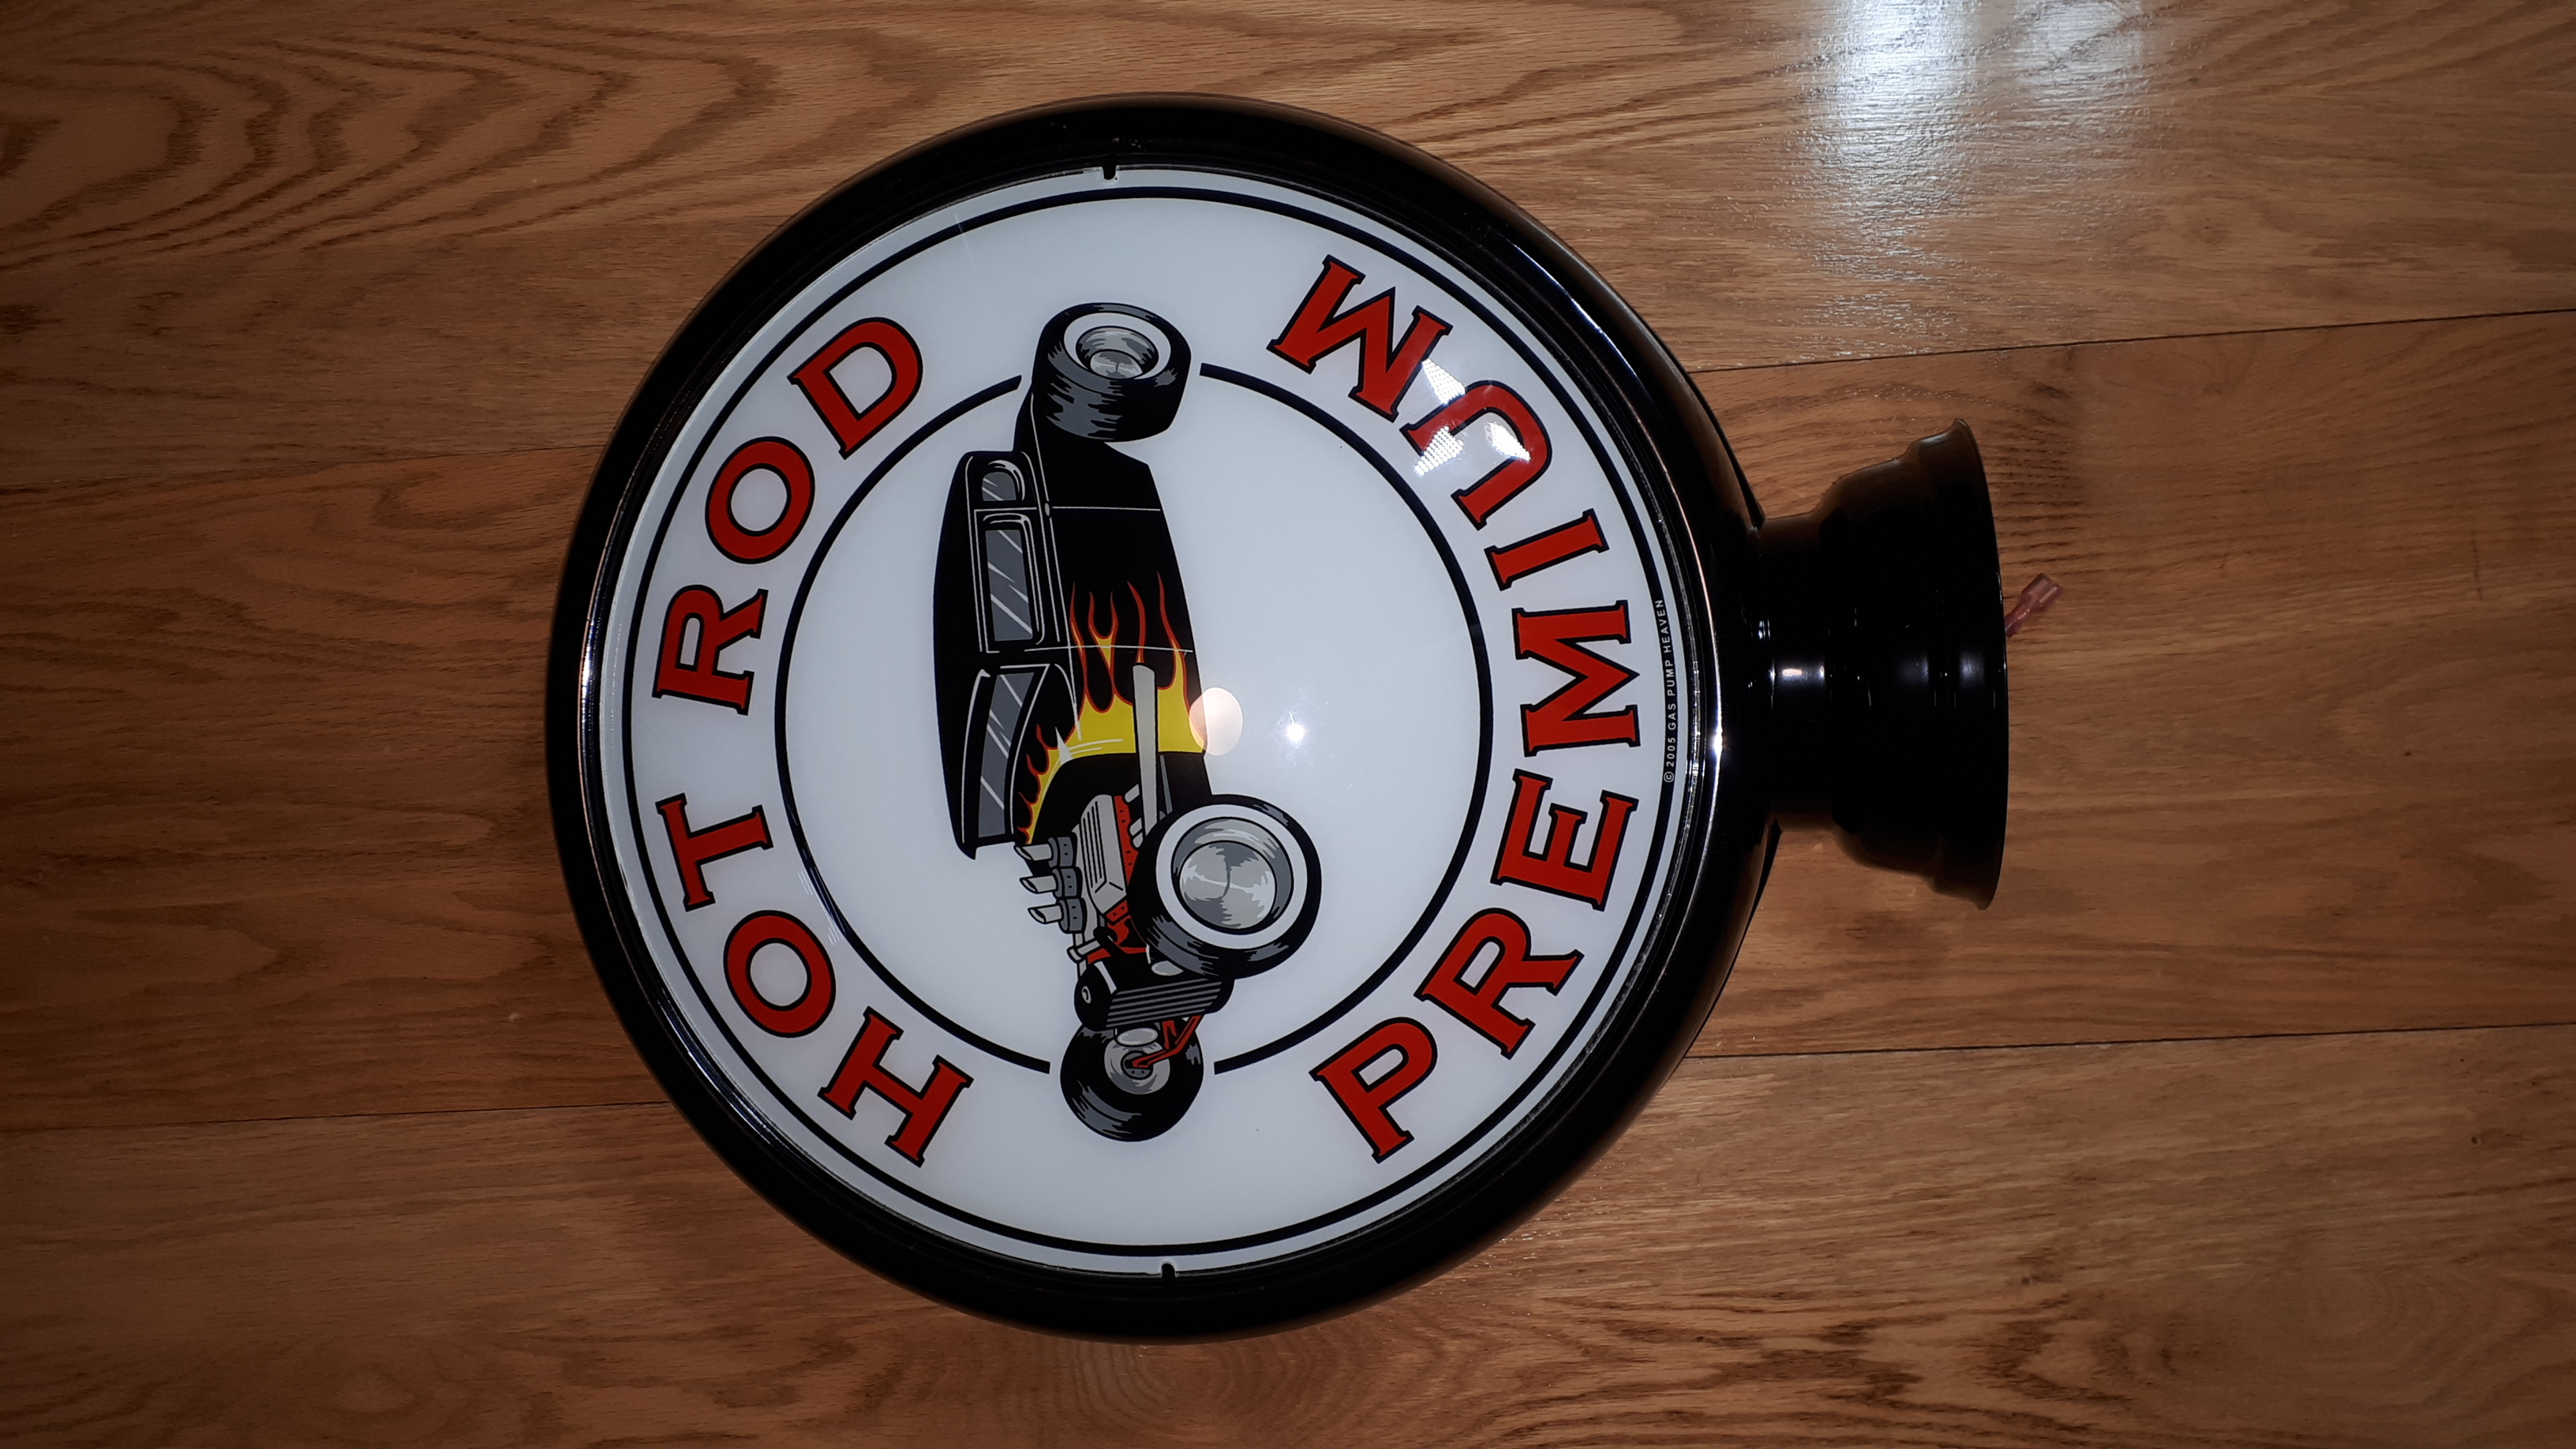 Hot Rod Premium gas pump globe